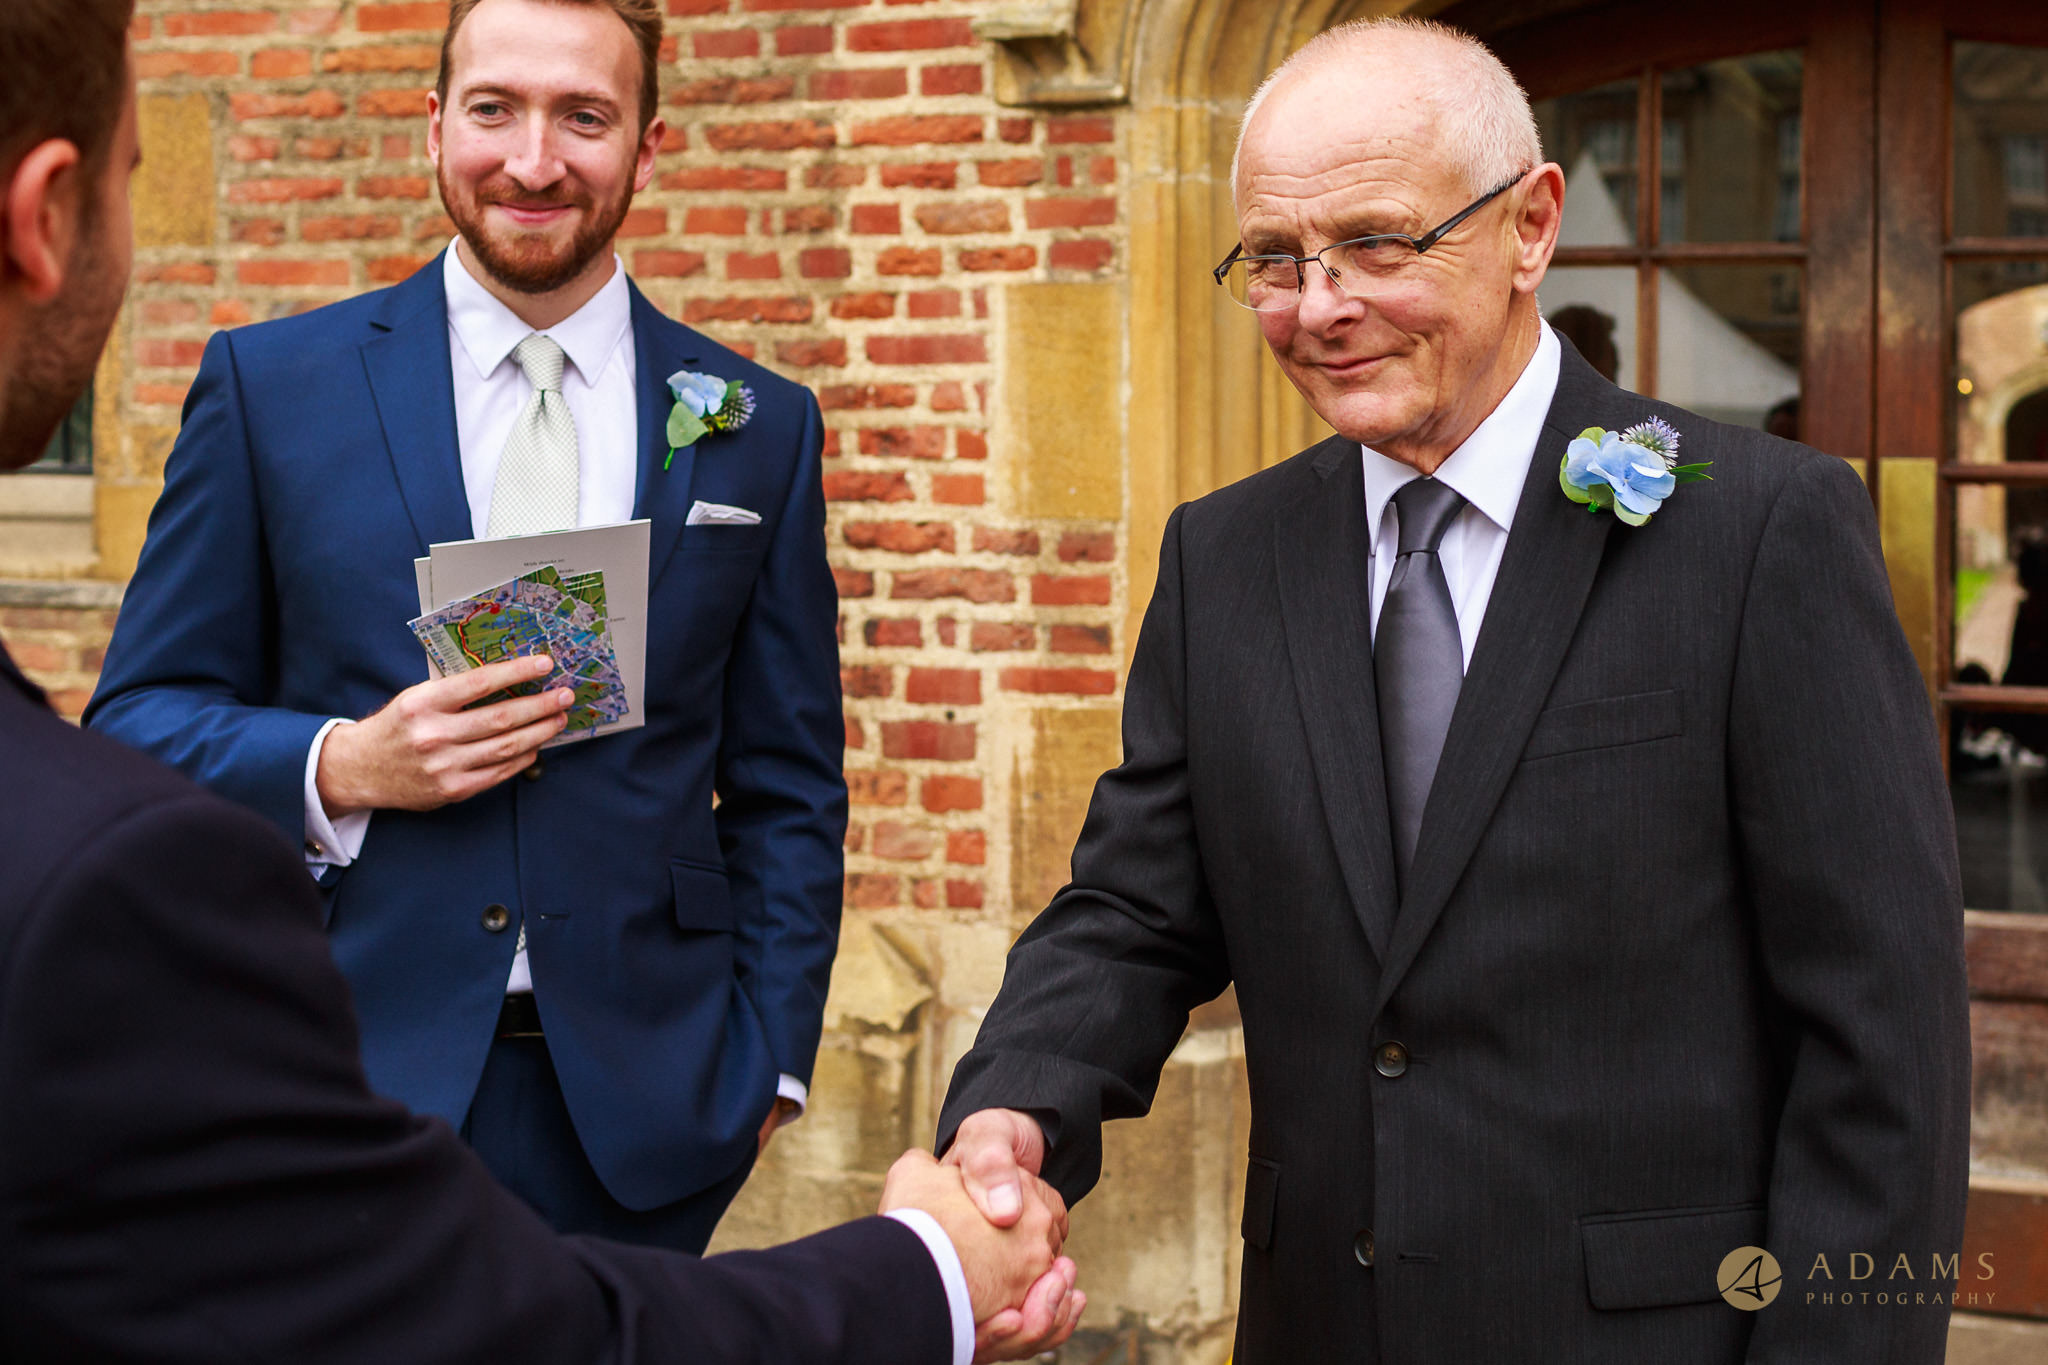 Wedding Photographer Cambridge father of the bride shale hands with the groom